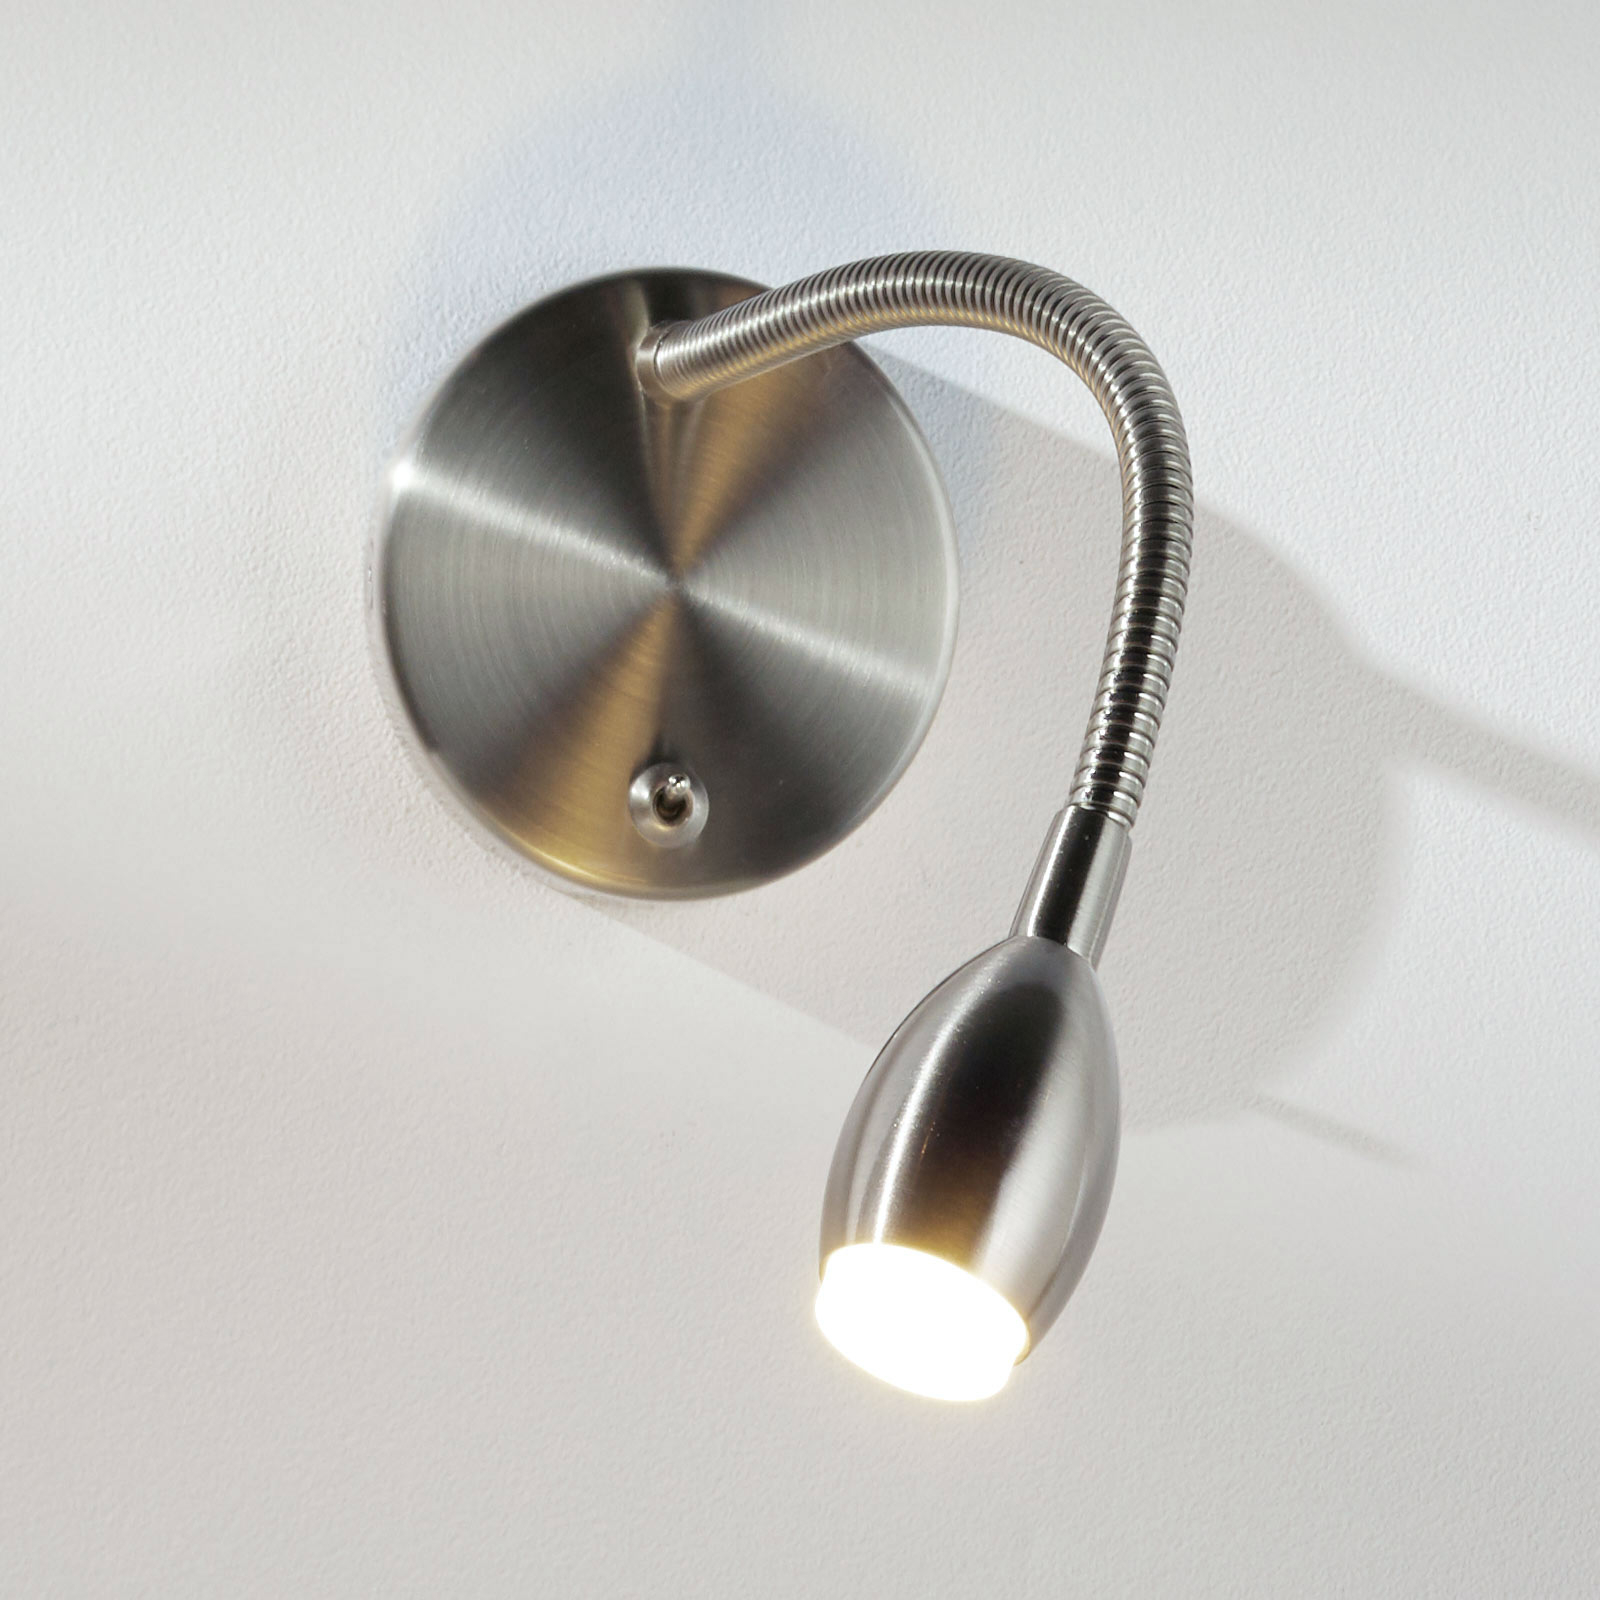 Flexi-arm wall light MARTA with LED, nickel_1050009_1